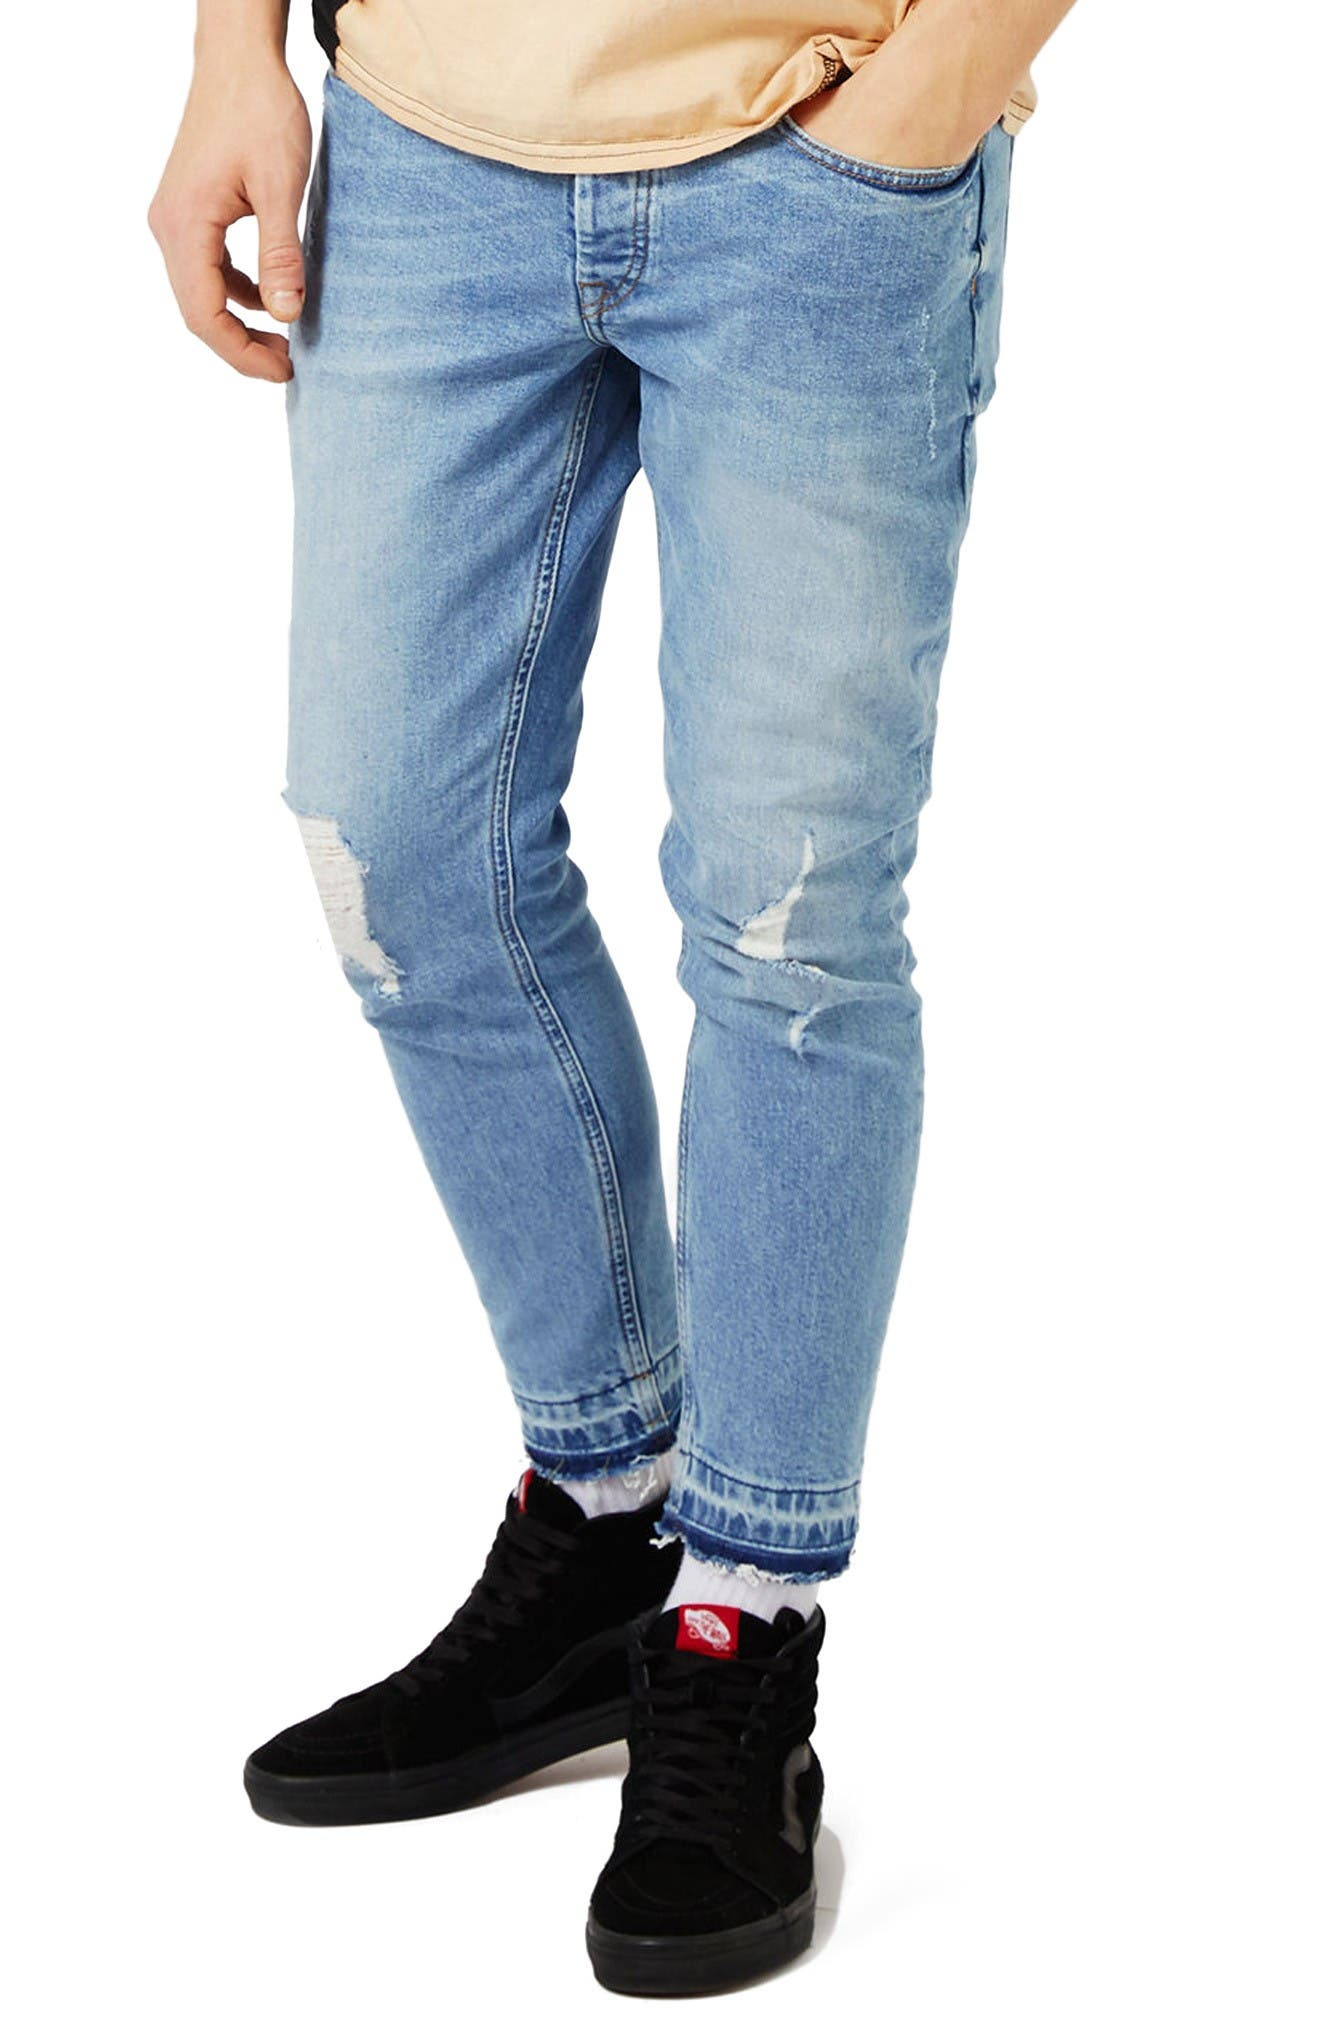 Topman Ripped Cutoff Stretch Skinny Fit Jeans